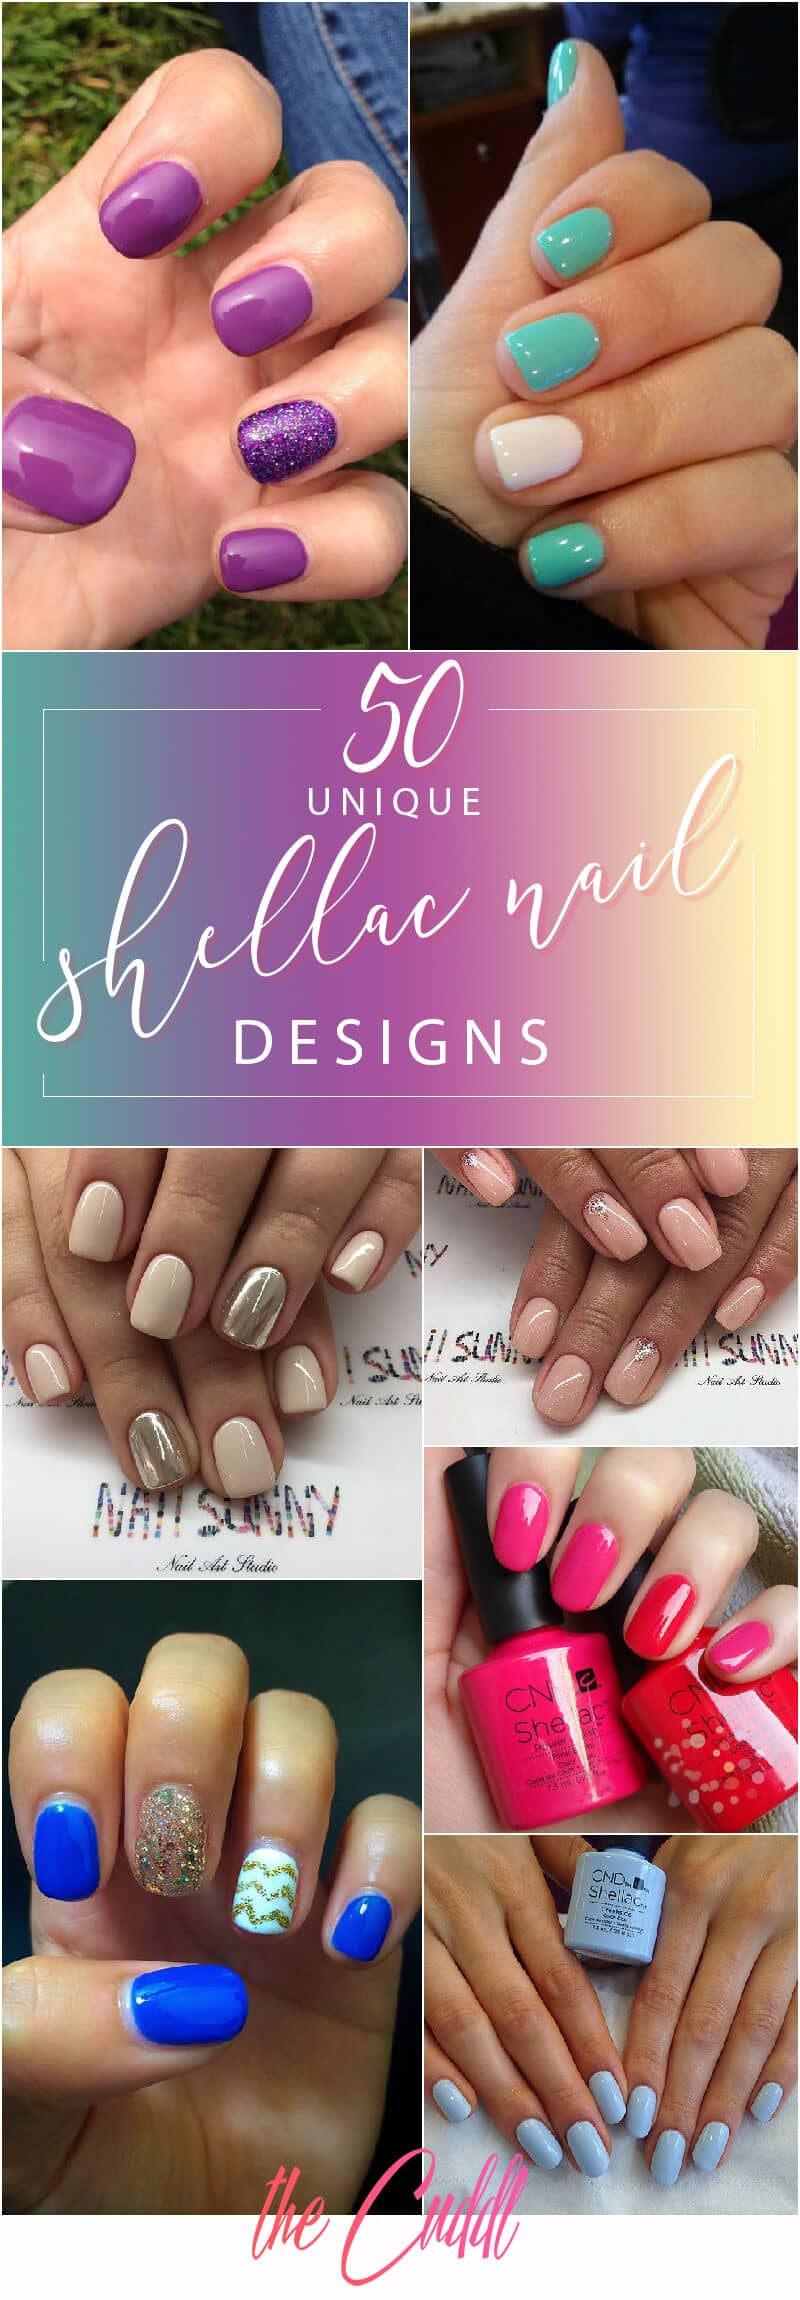 50 Reasons Shellac Nail Design Is The Manicure You Need Right Now